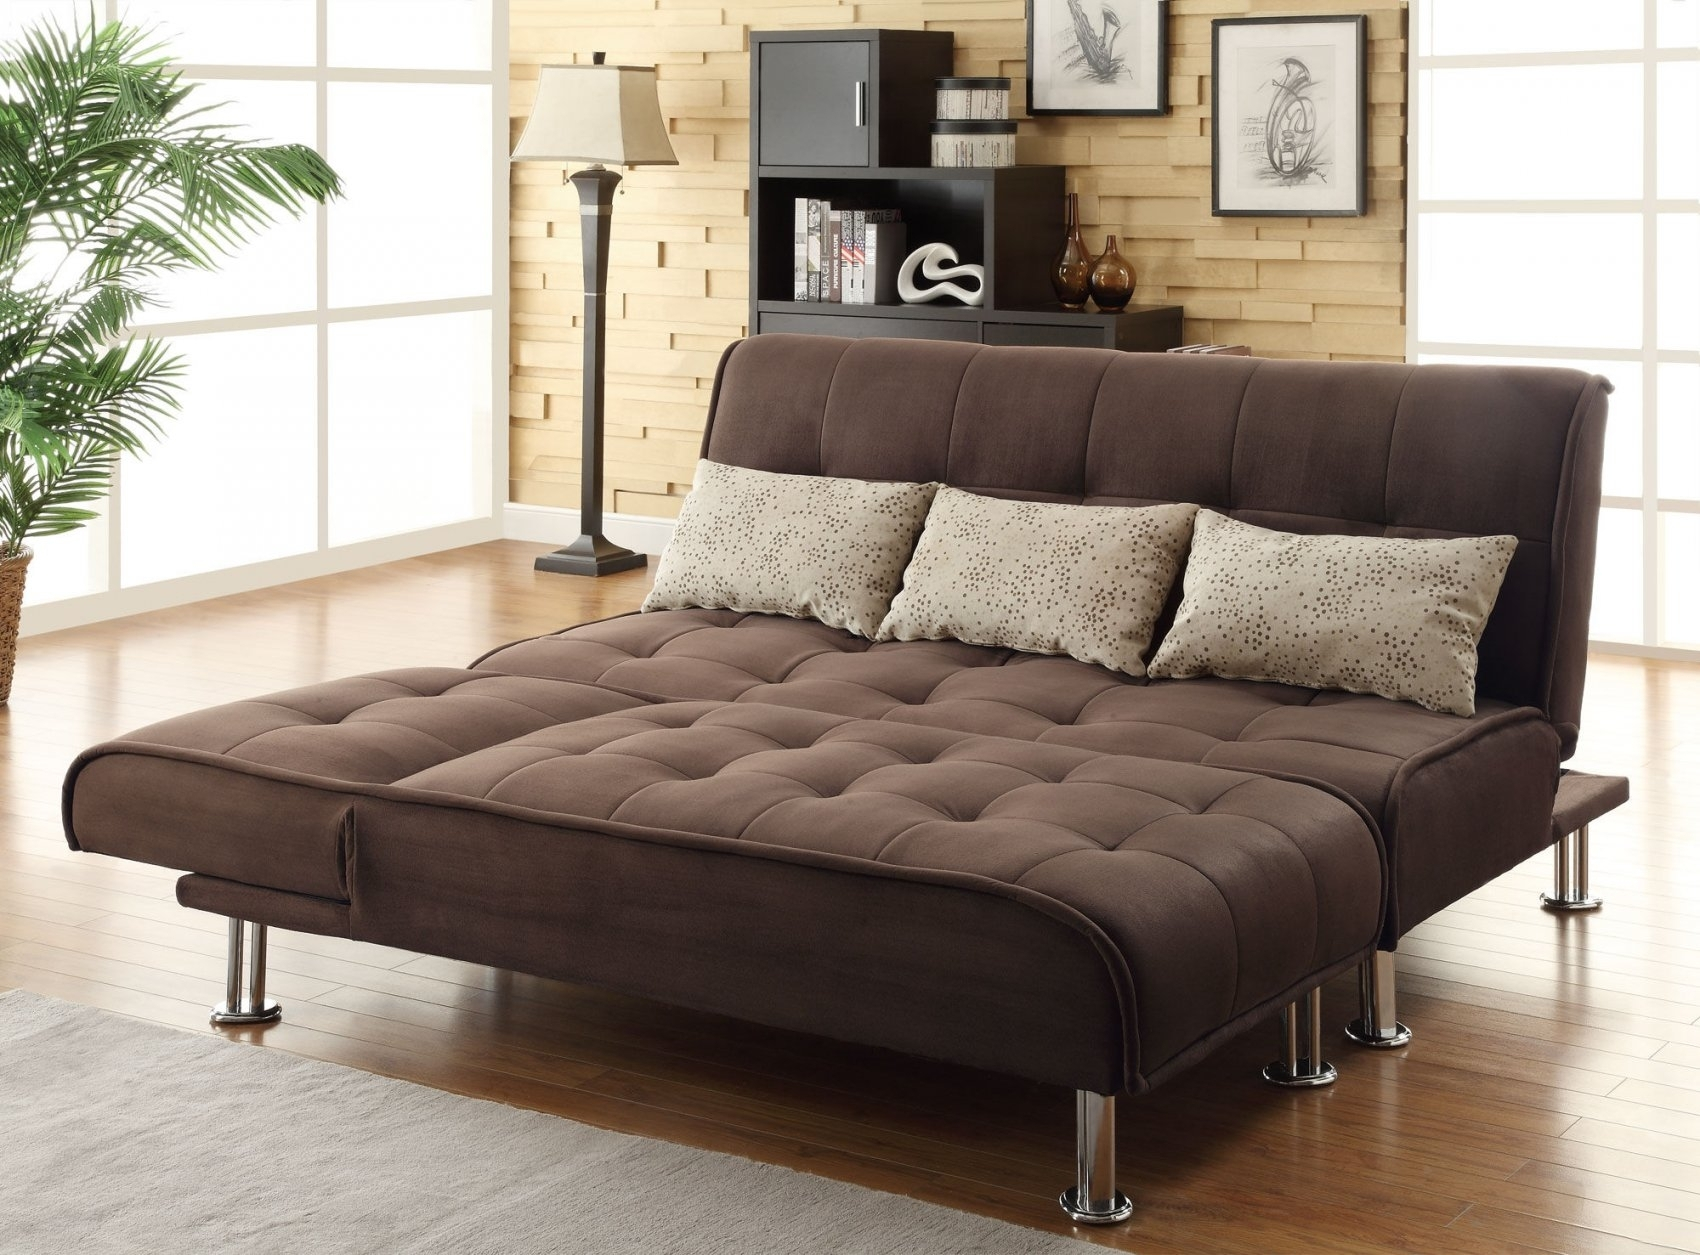 Queen Size Sofa Sleeper Best Living Room Decorating With Regard To Intended For Queen Size Sofas (View 4 of 10)